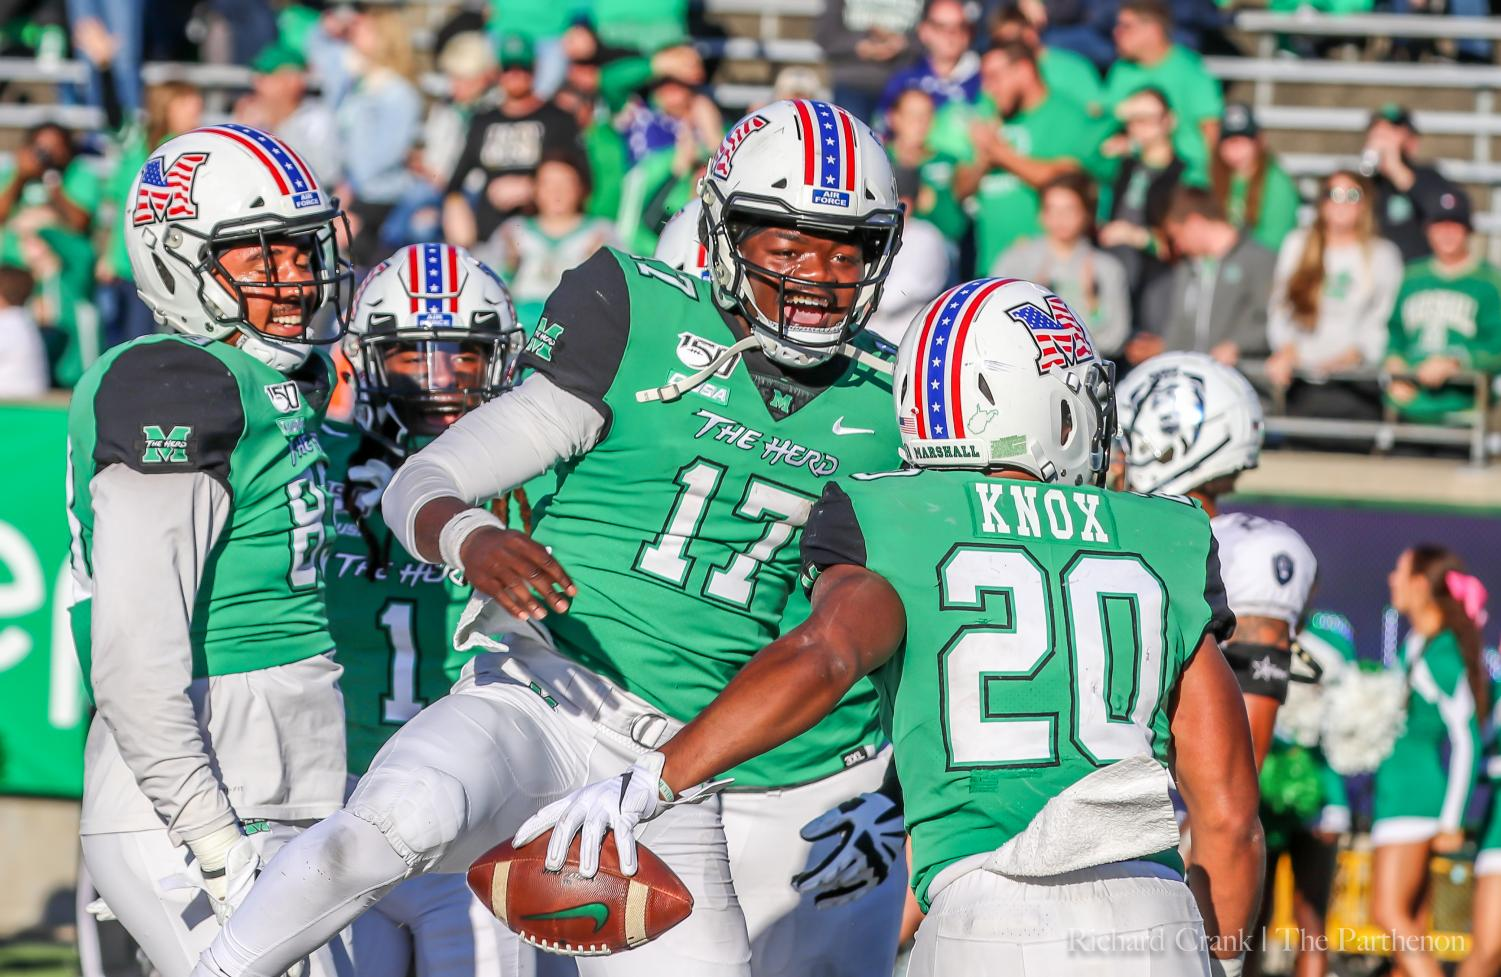 Marshall football player Isaiah Green is all smiles with teammate Brenden Knox in the game against Old Dominion.